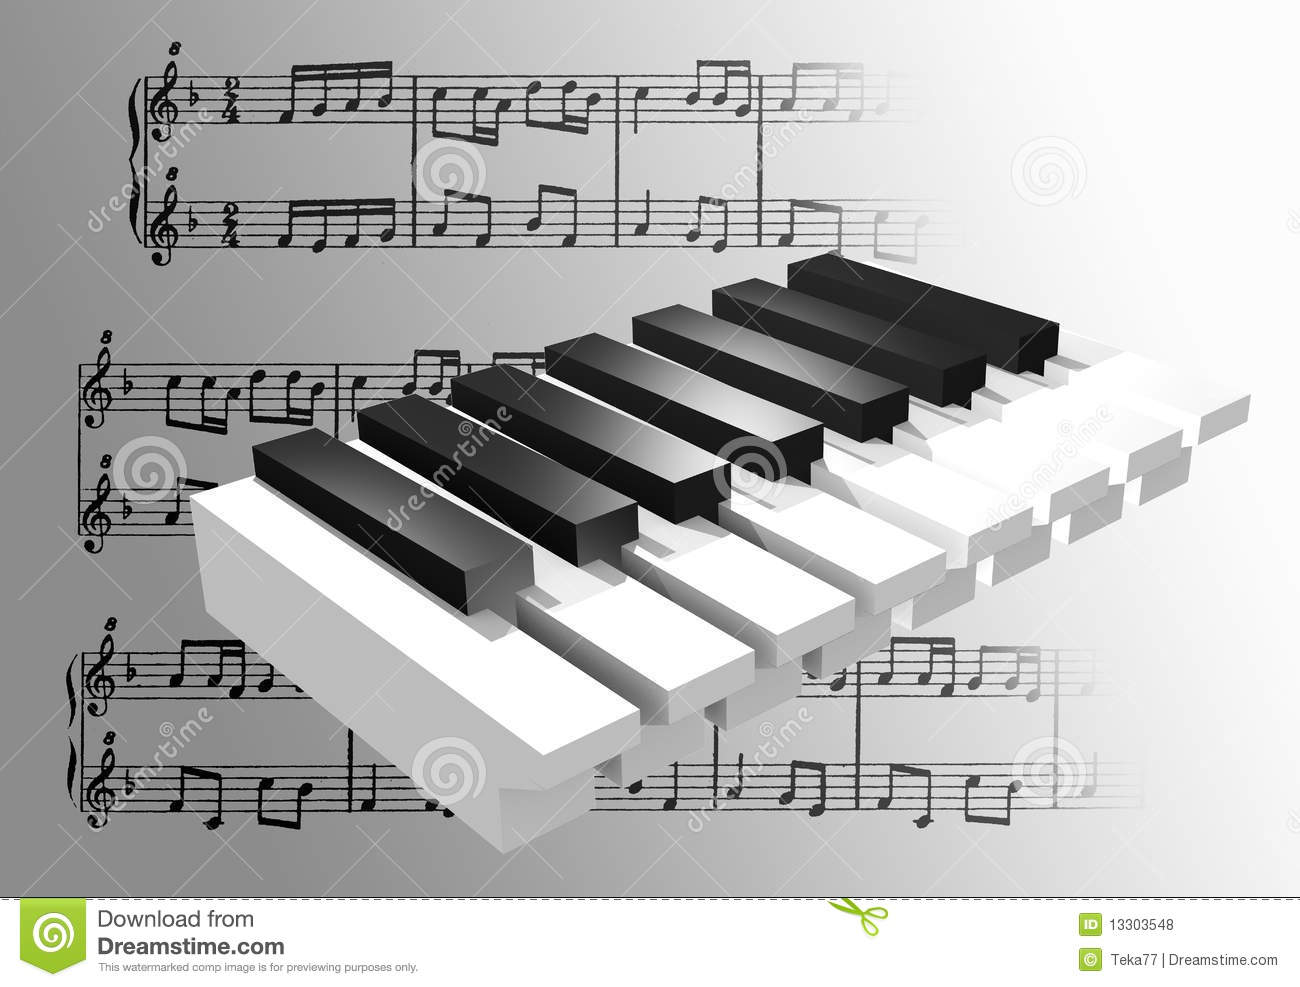 Piano 3d advanced stock illustration illustration of render royalty free stock photo pooptronica